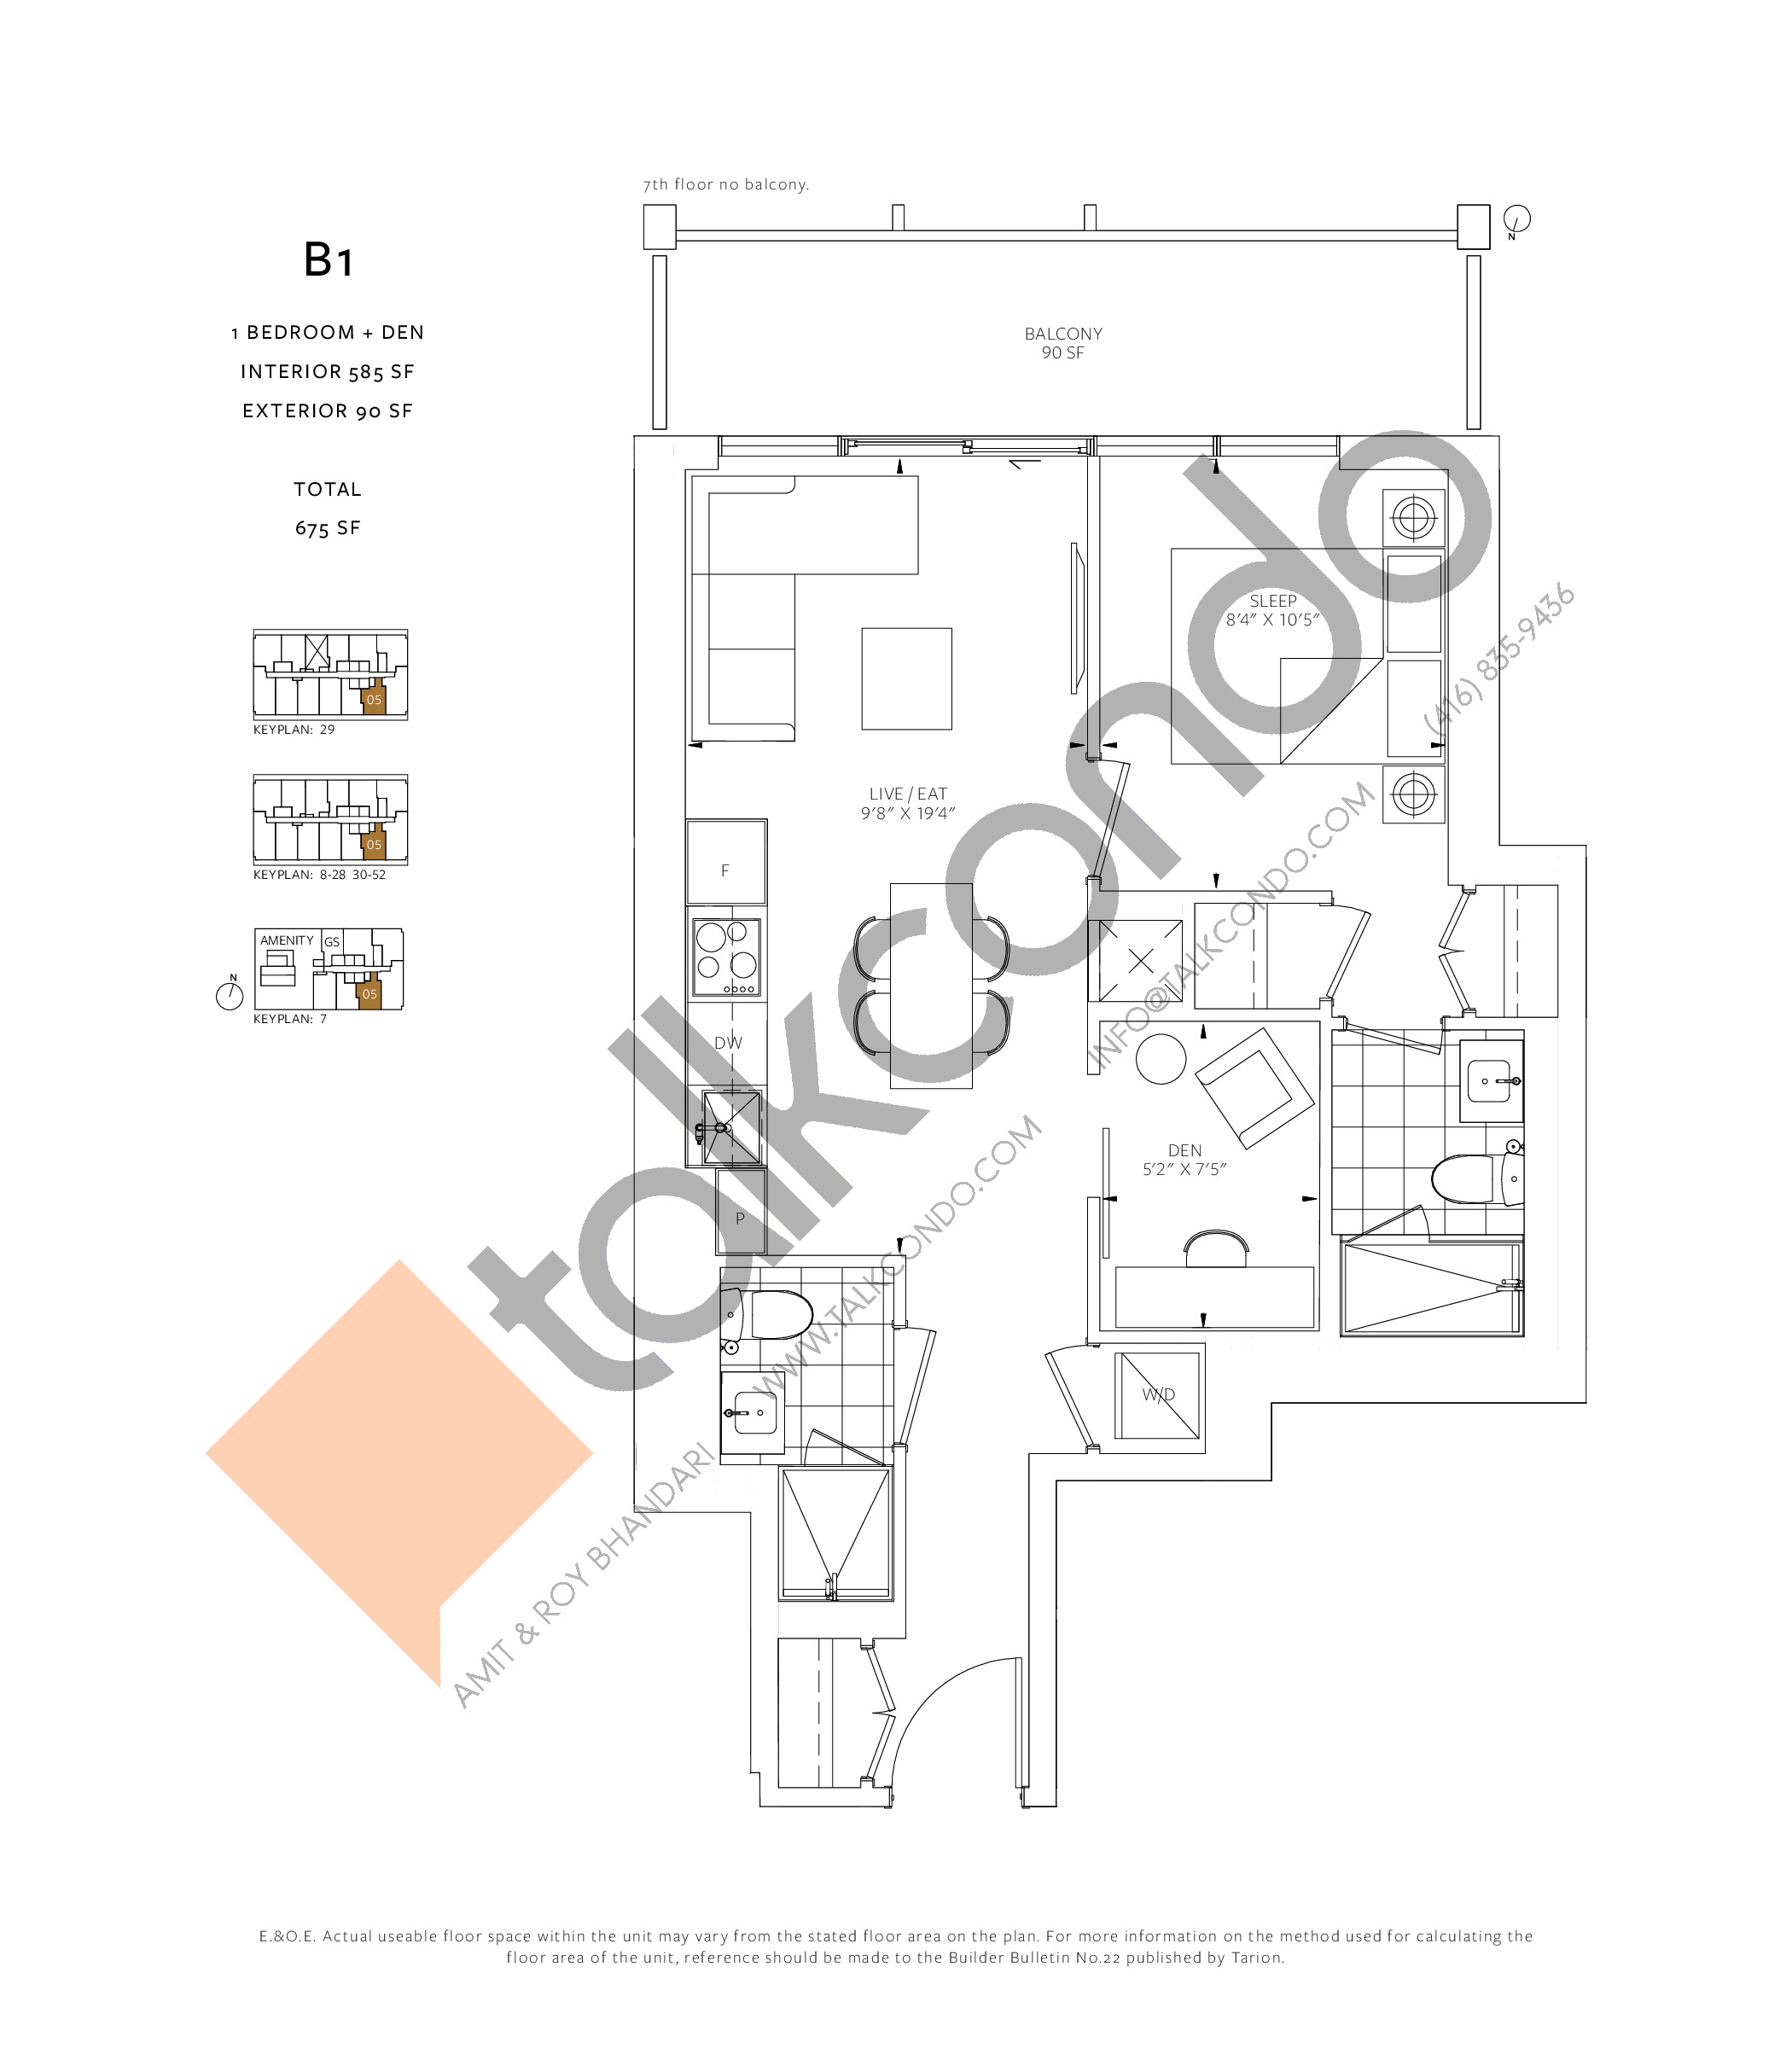 B1 Floor Plan at 88 Queen Condos - Phase 2 - 585 sq.ft